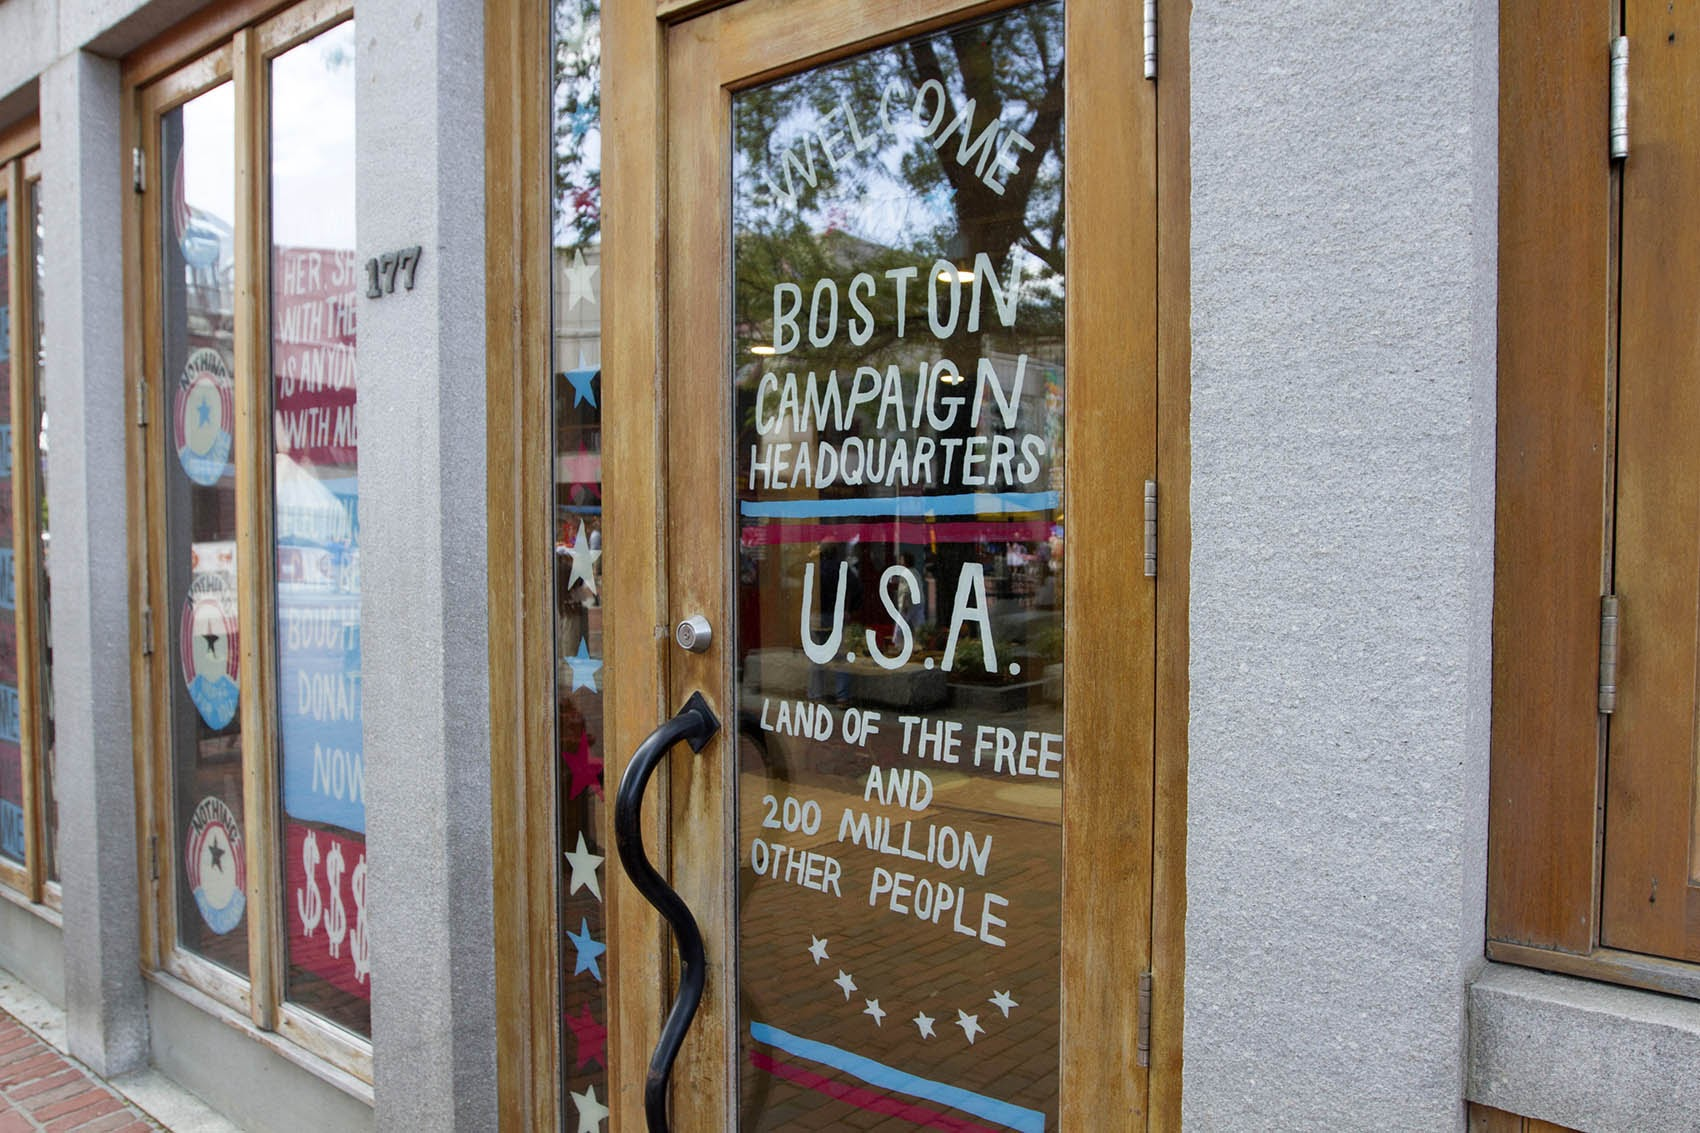 Artist Pat Falco's faux Boston Campaign Headquarters meant to poke fun at election season. (Joe Difazio for WBUR)